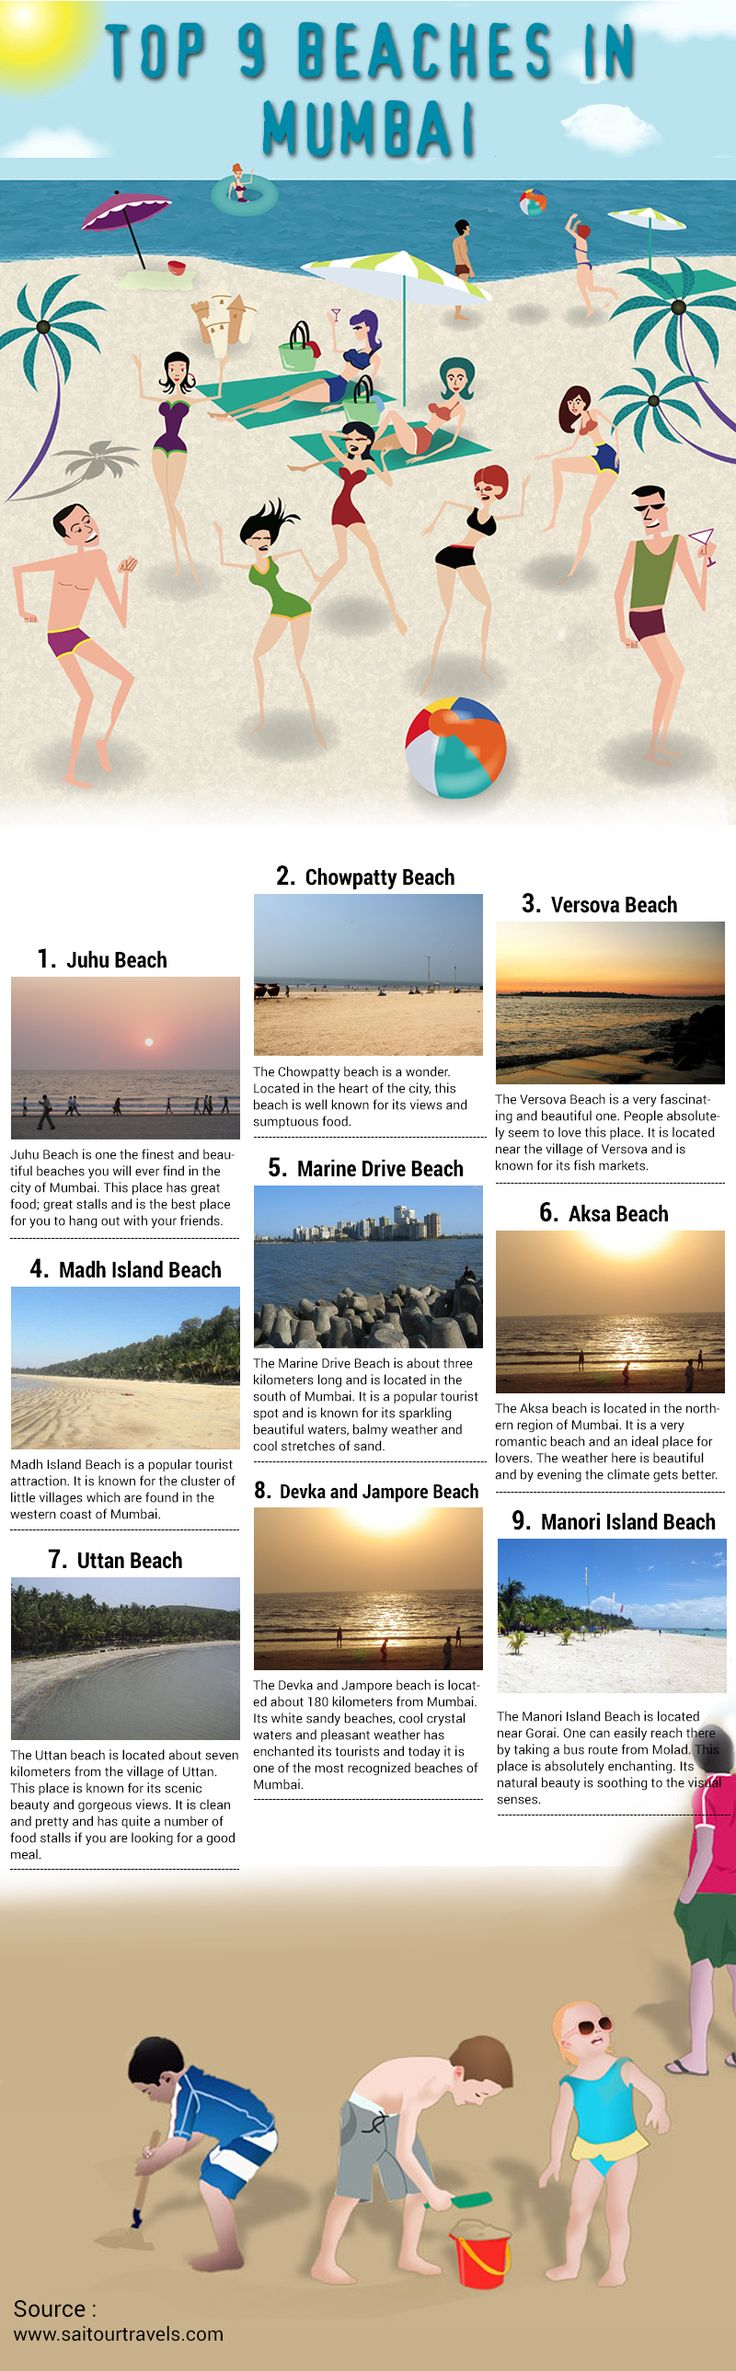 Top 9 Beaches in #Mumbai #Tour #Travel #Tourism #India